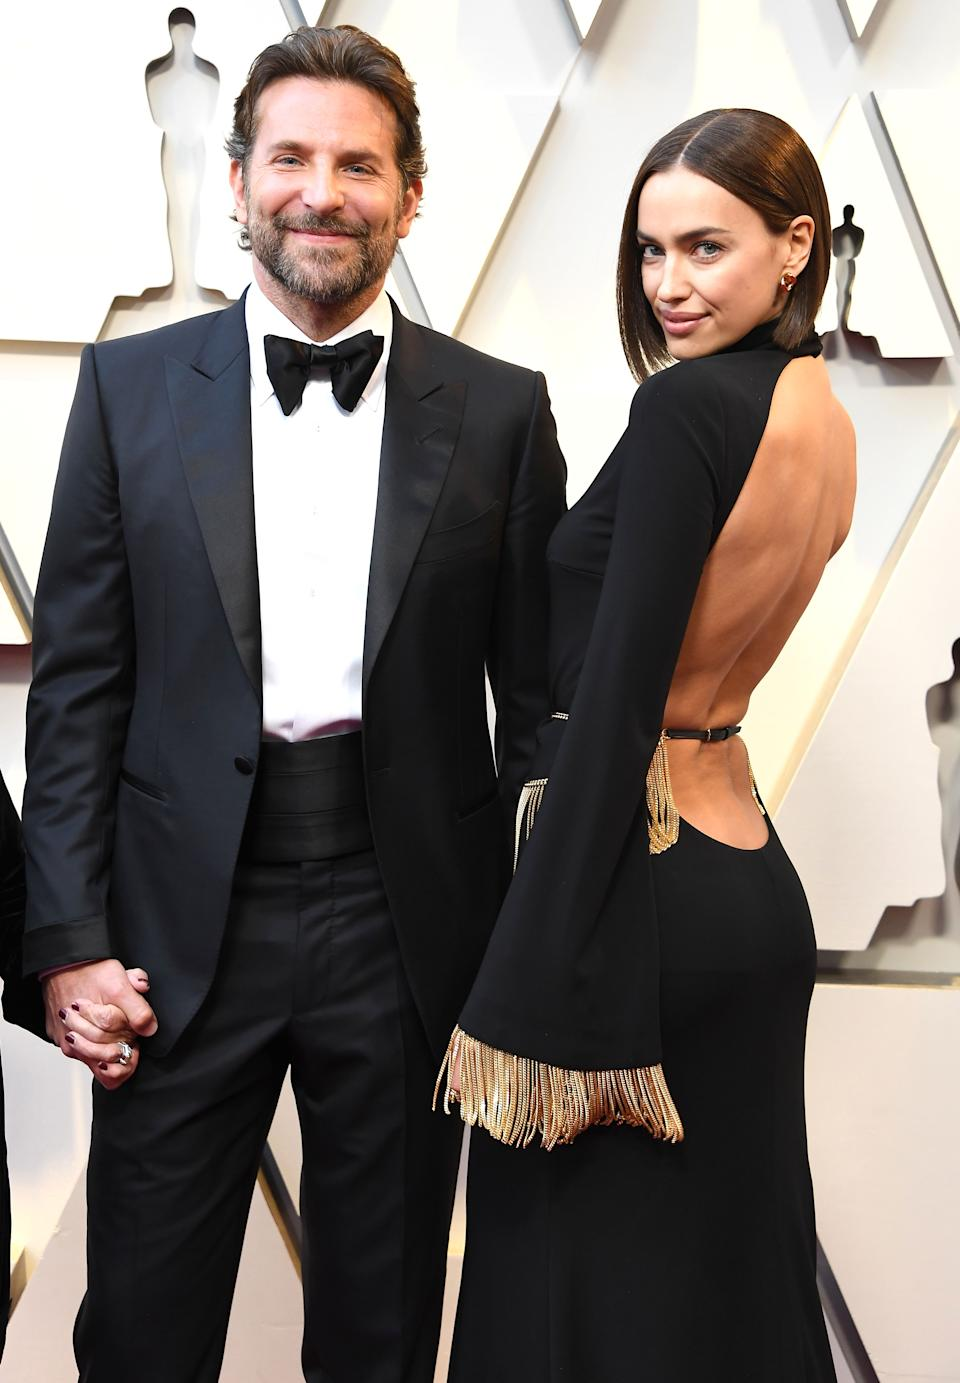 Bradley Cooper and Irina Shayk arrives at the 91st Annual Academy Awards at Hollywood and Highland on February 24, 2019 in Hollywood, California. (Photo by Steve Granitz/WireImage)